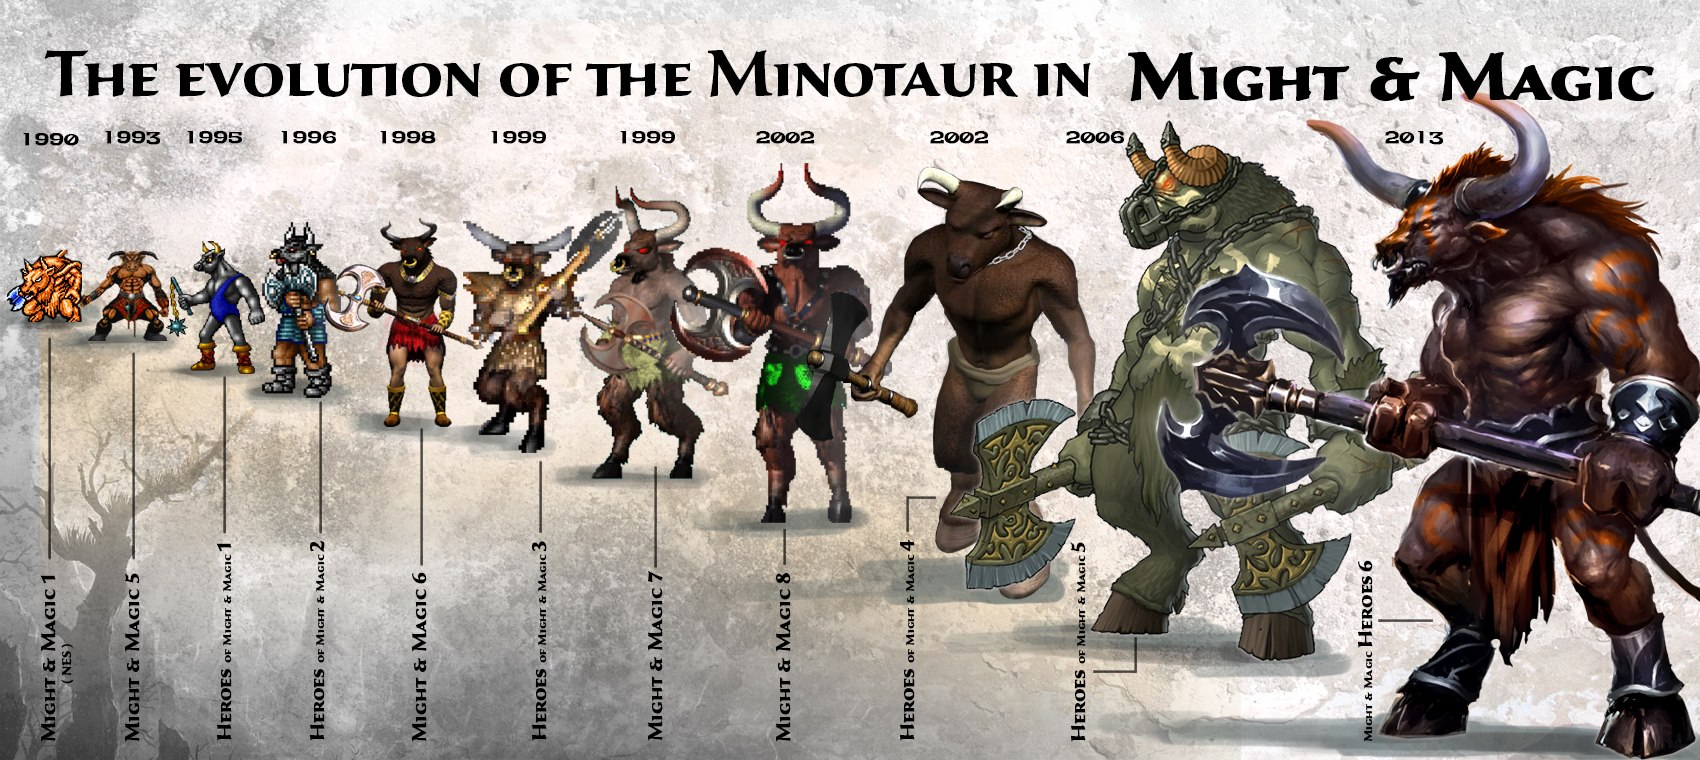 The evolution of the Minotaur in Might and Magic